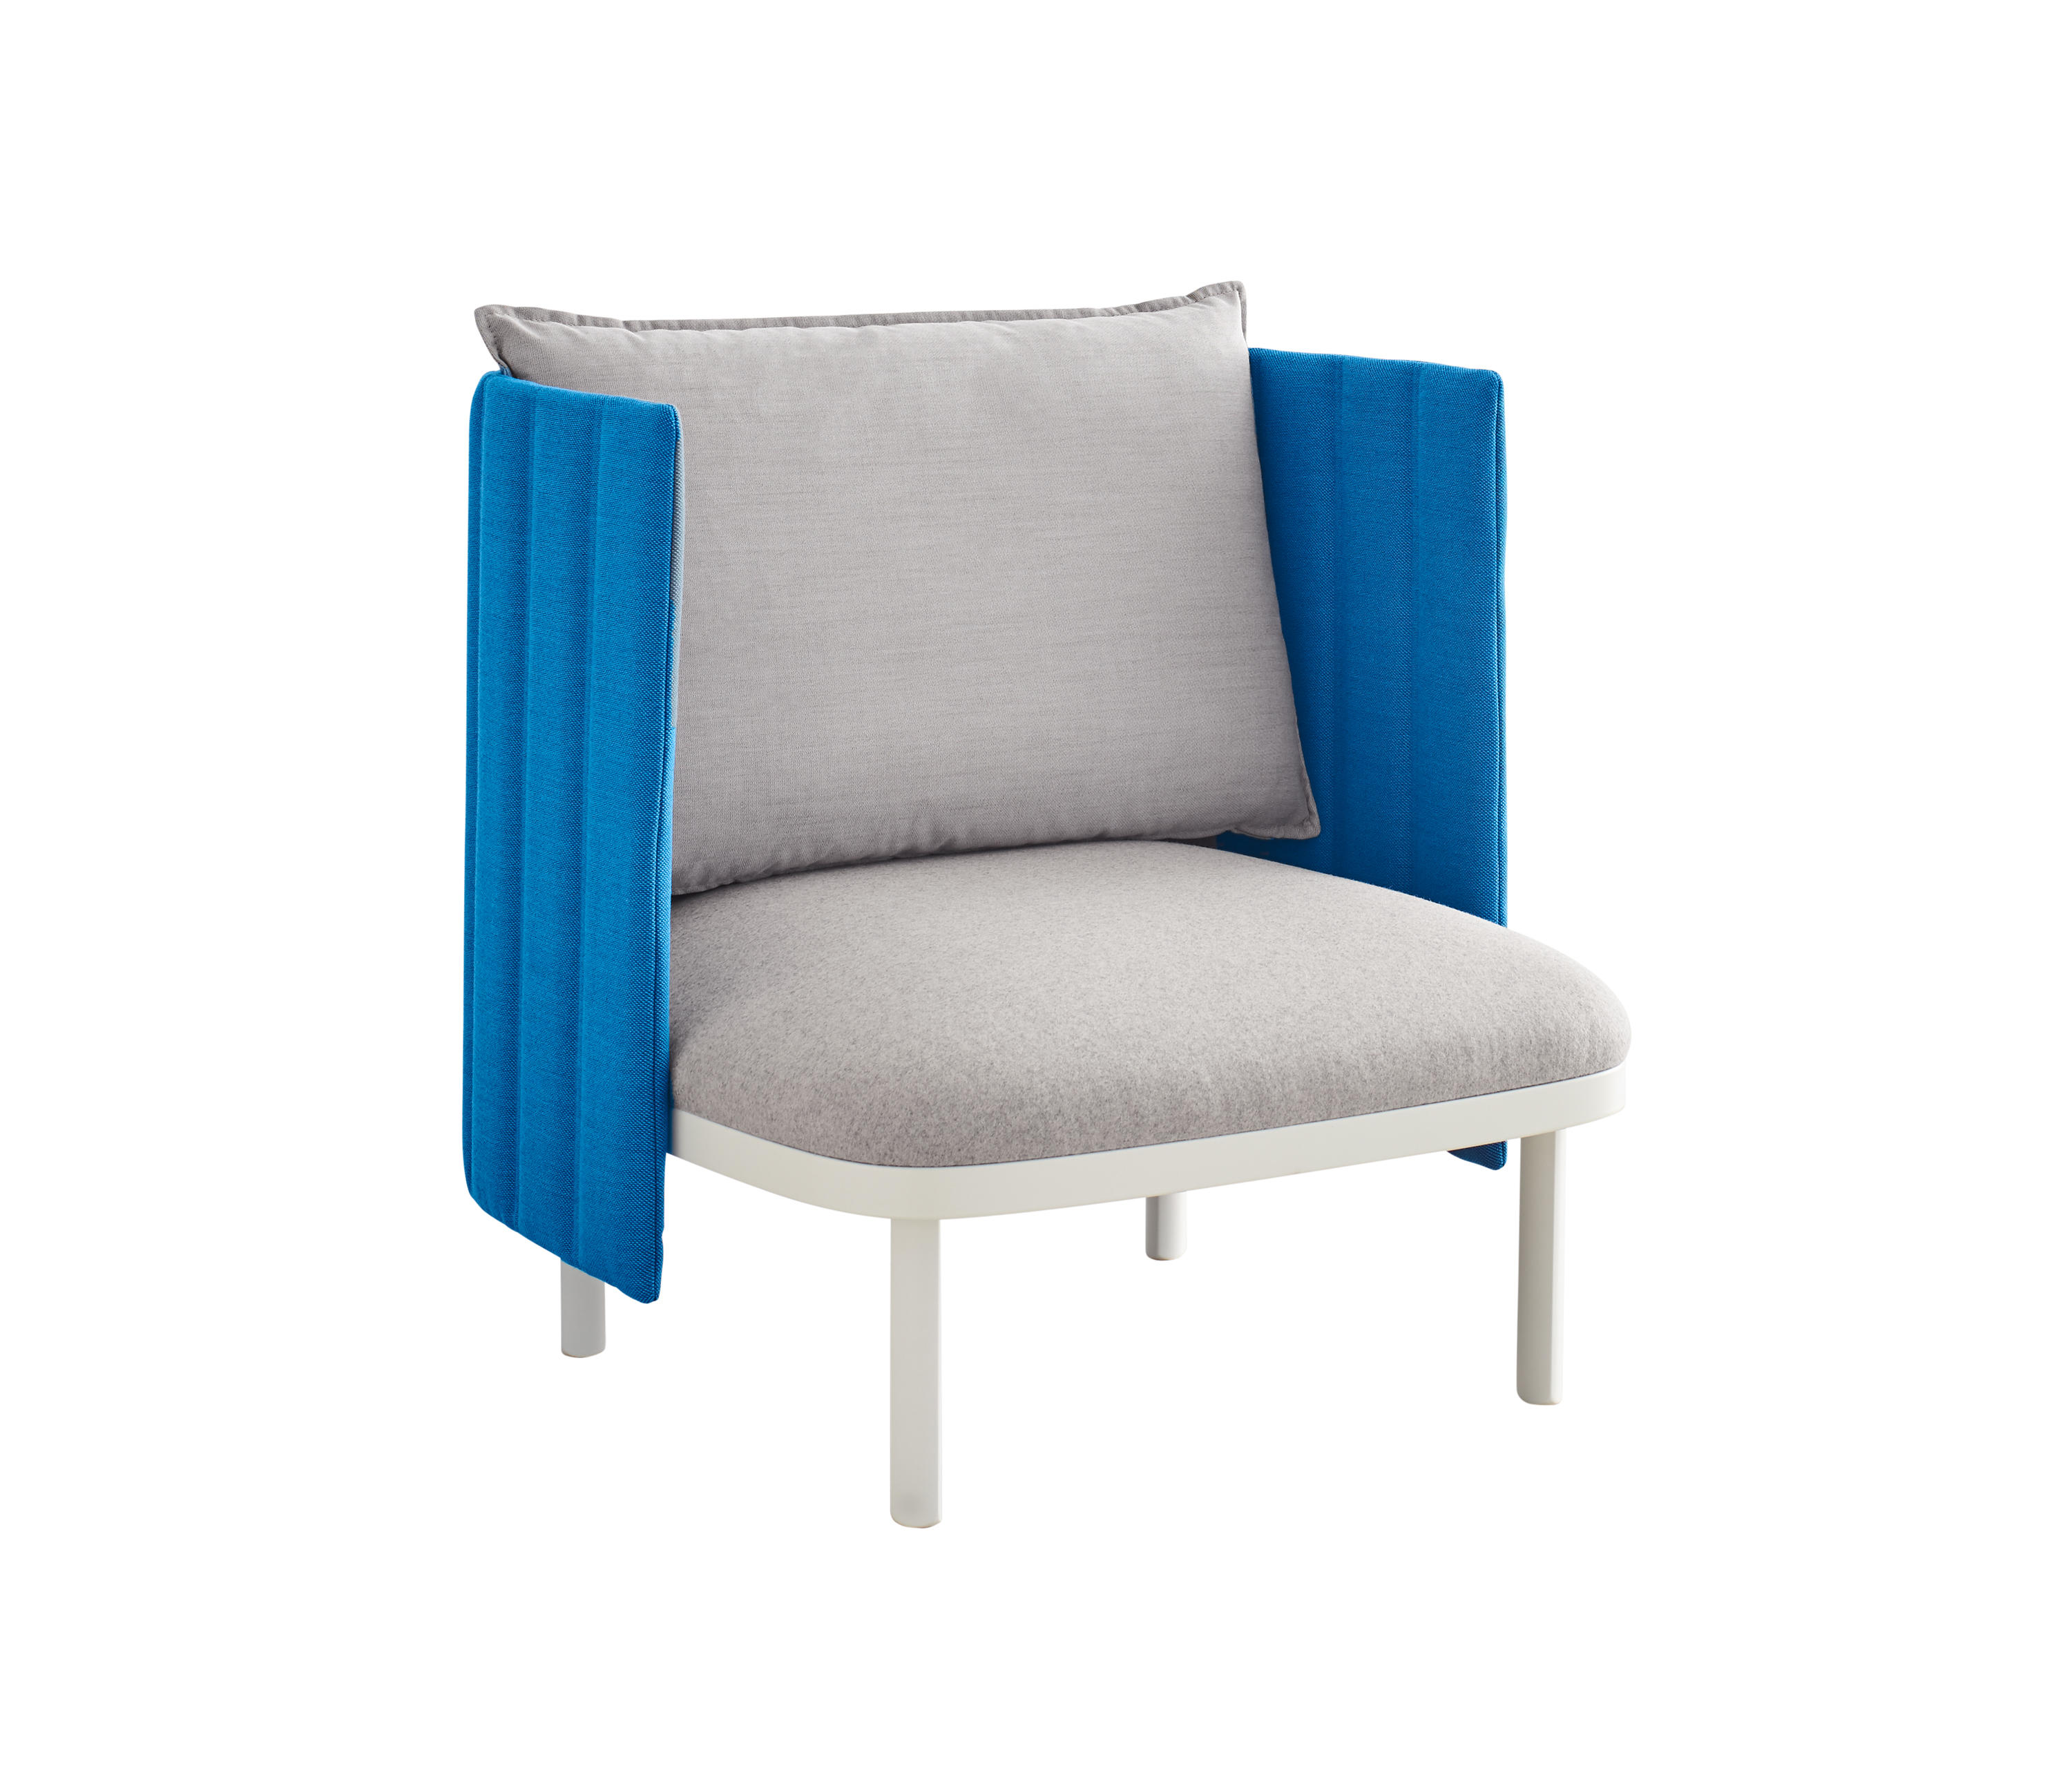 Paravent Niedrig Ophelis Sum Lounge Chairs From Ophelis Architonic